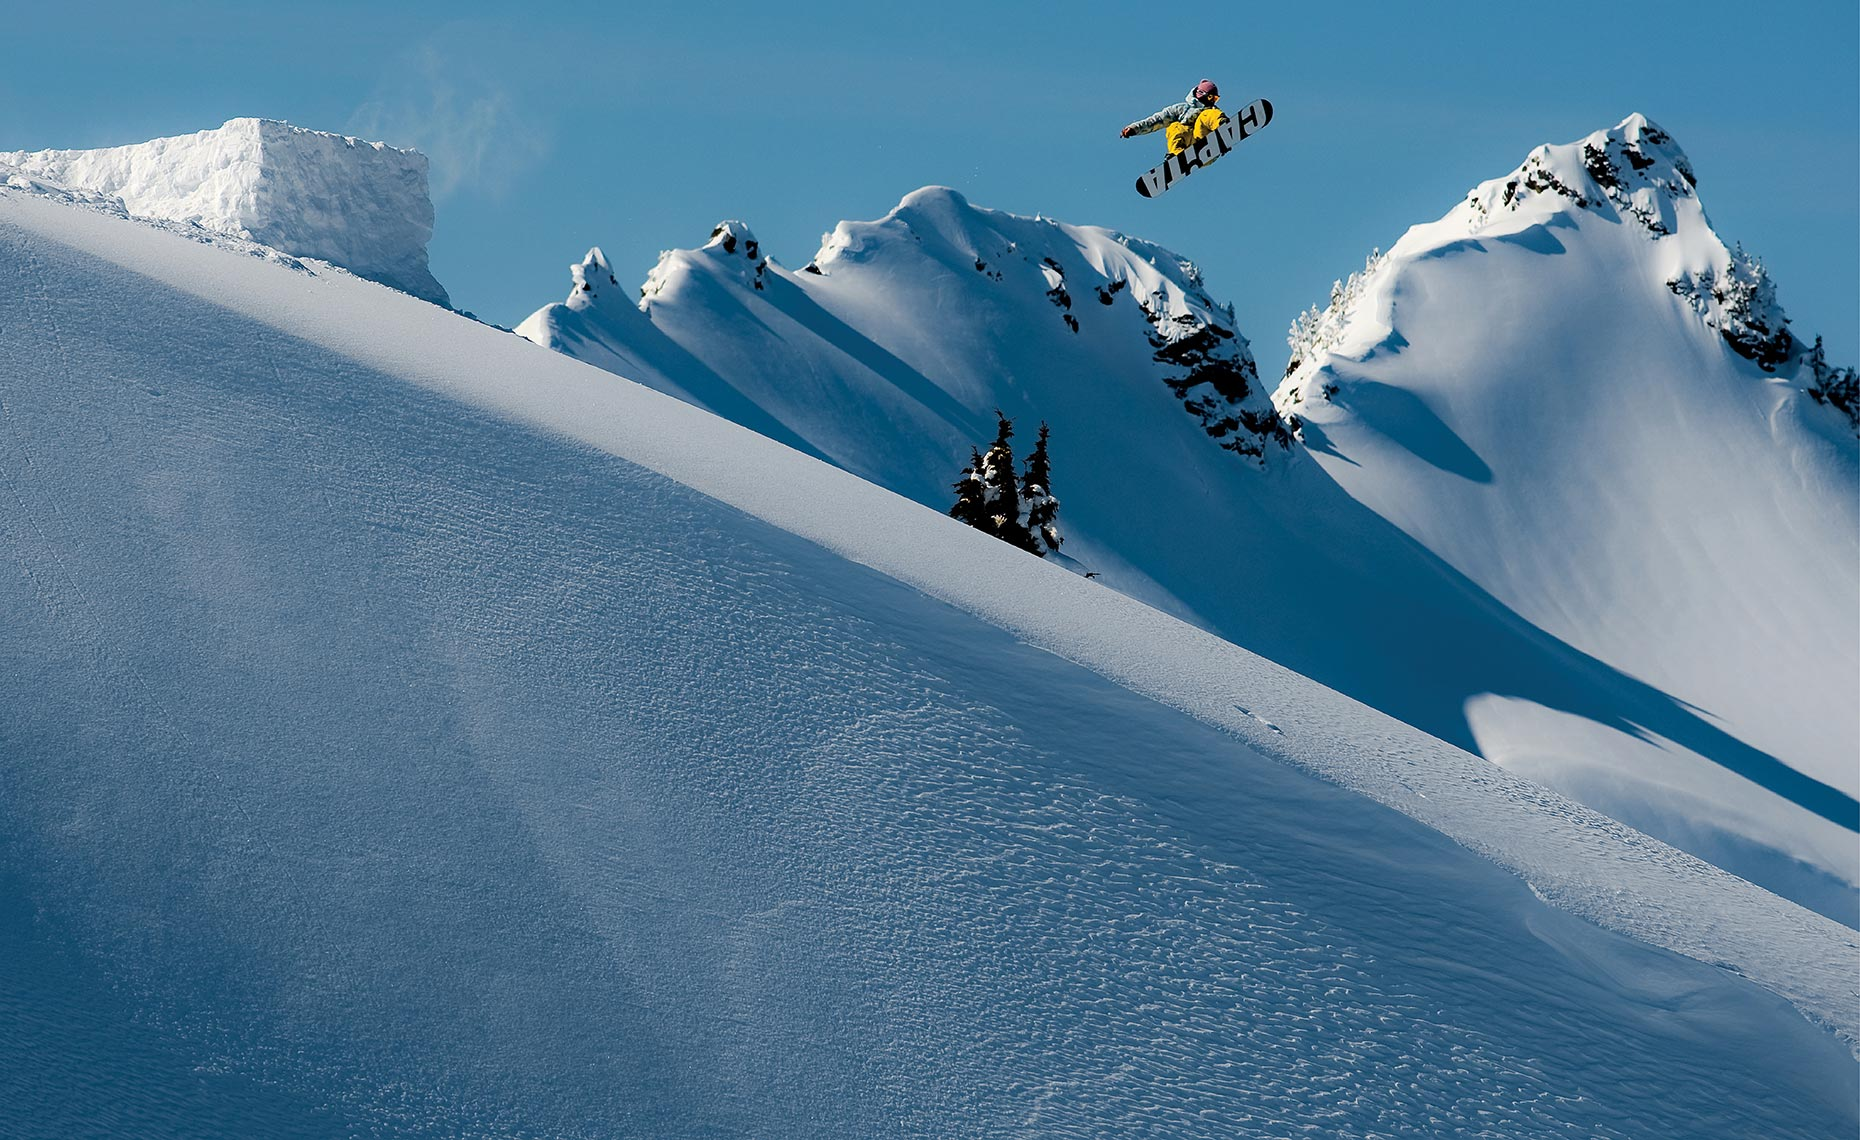 11_Dustin_Craven_Mt_Baker_backcountry_Powder_Snowboarding_Chris_Wellhausen_Photography.JPG